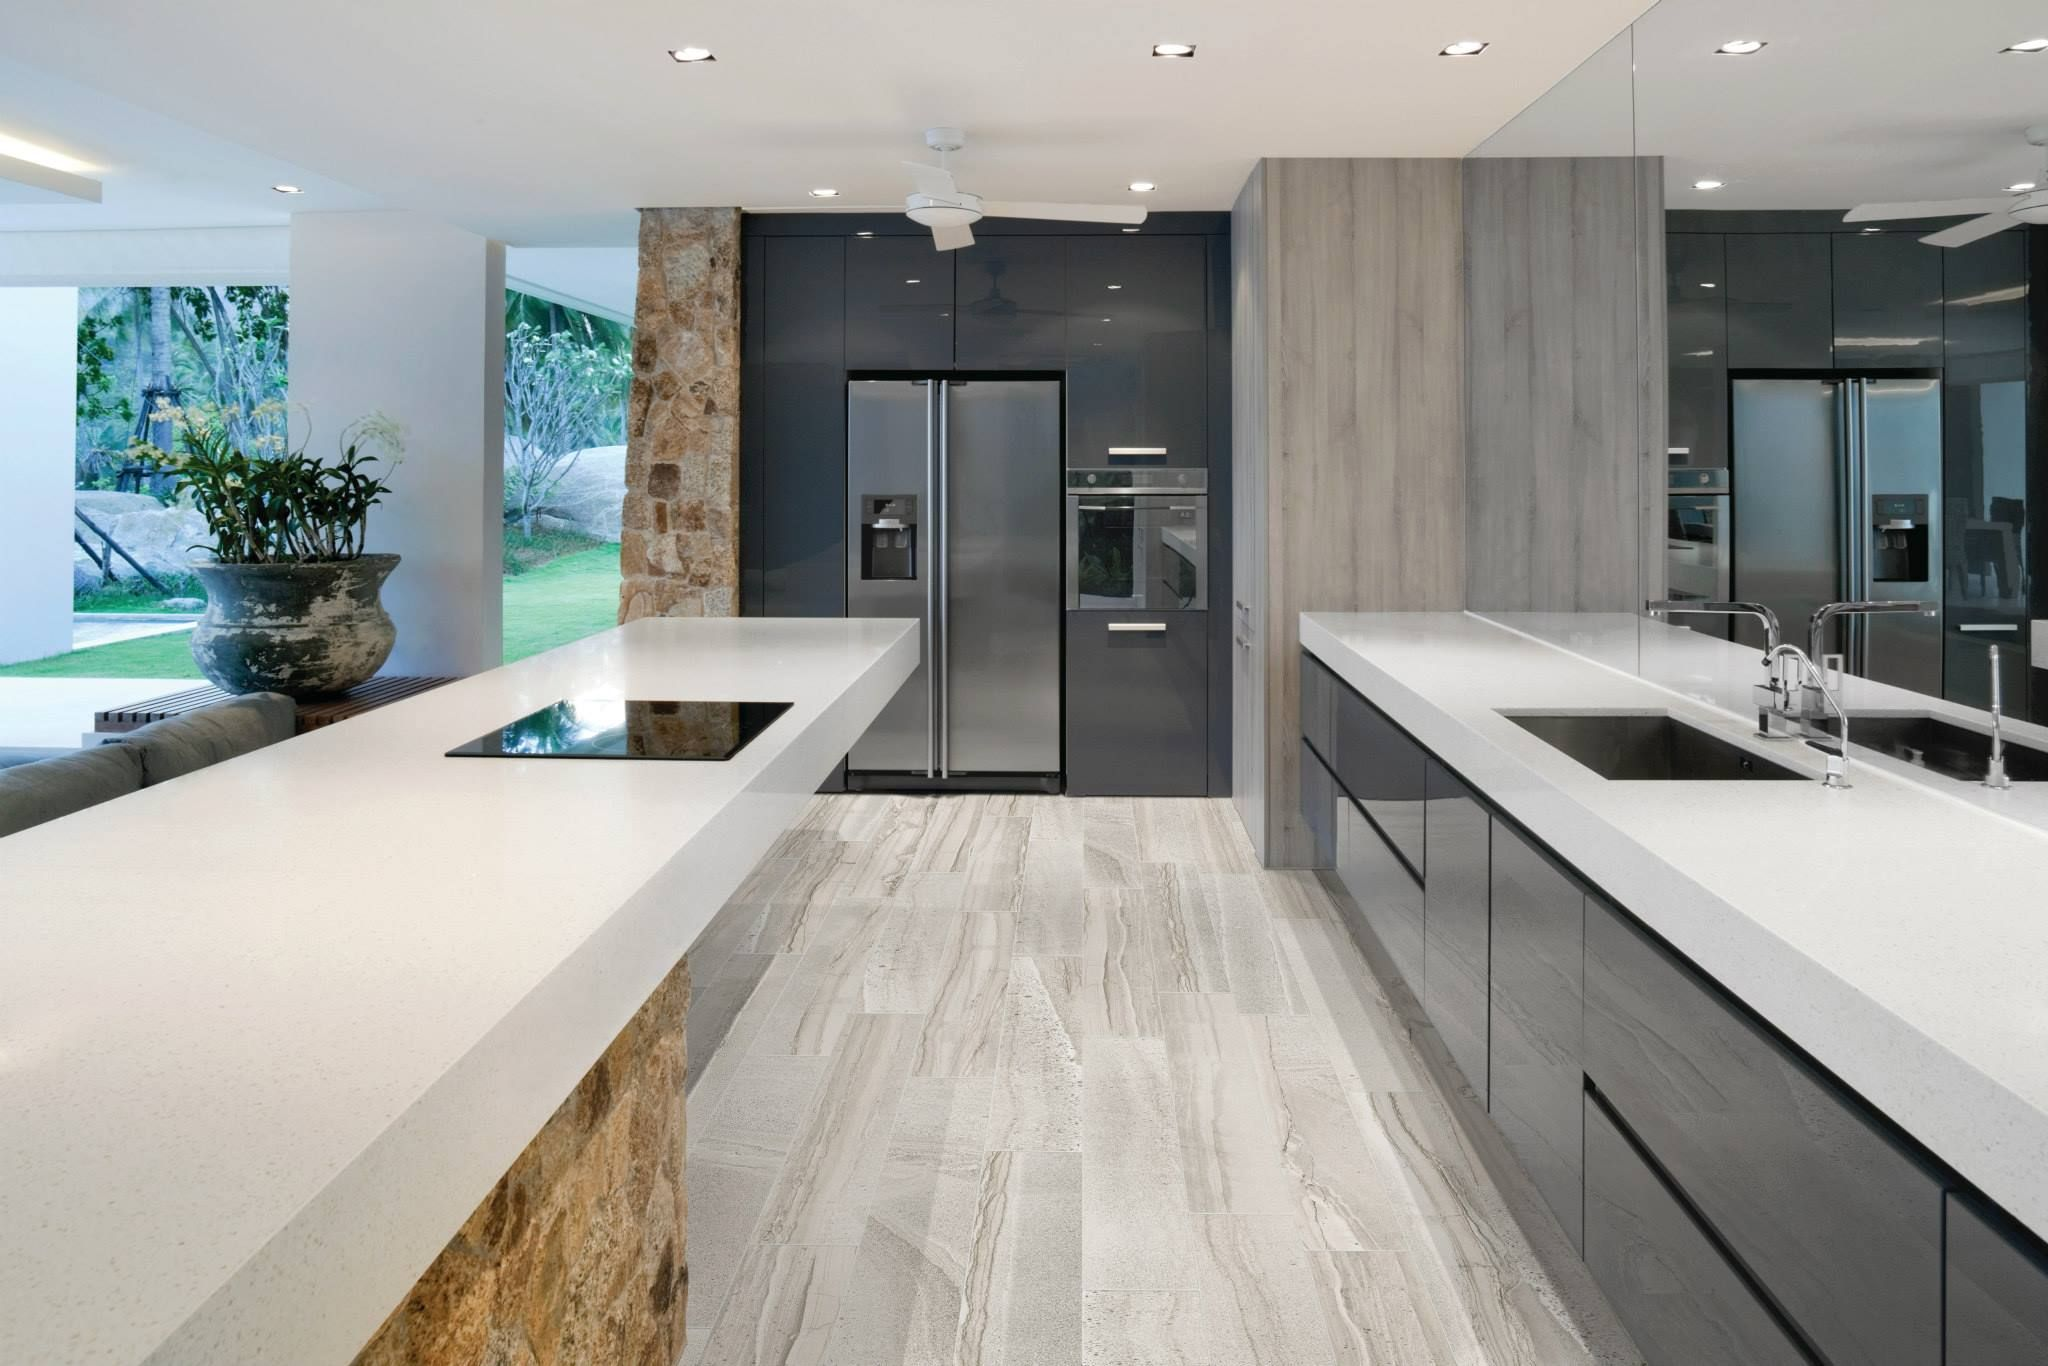 amelia mist || hd porcelain #tiles #kitchen #tileciti #ameliamist